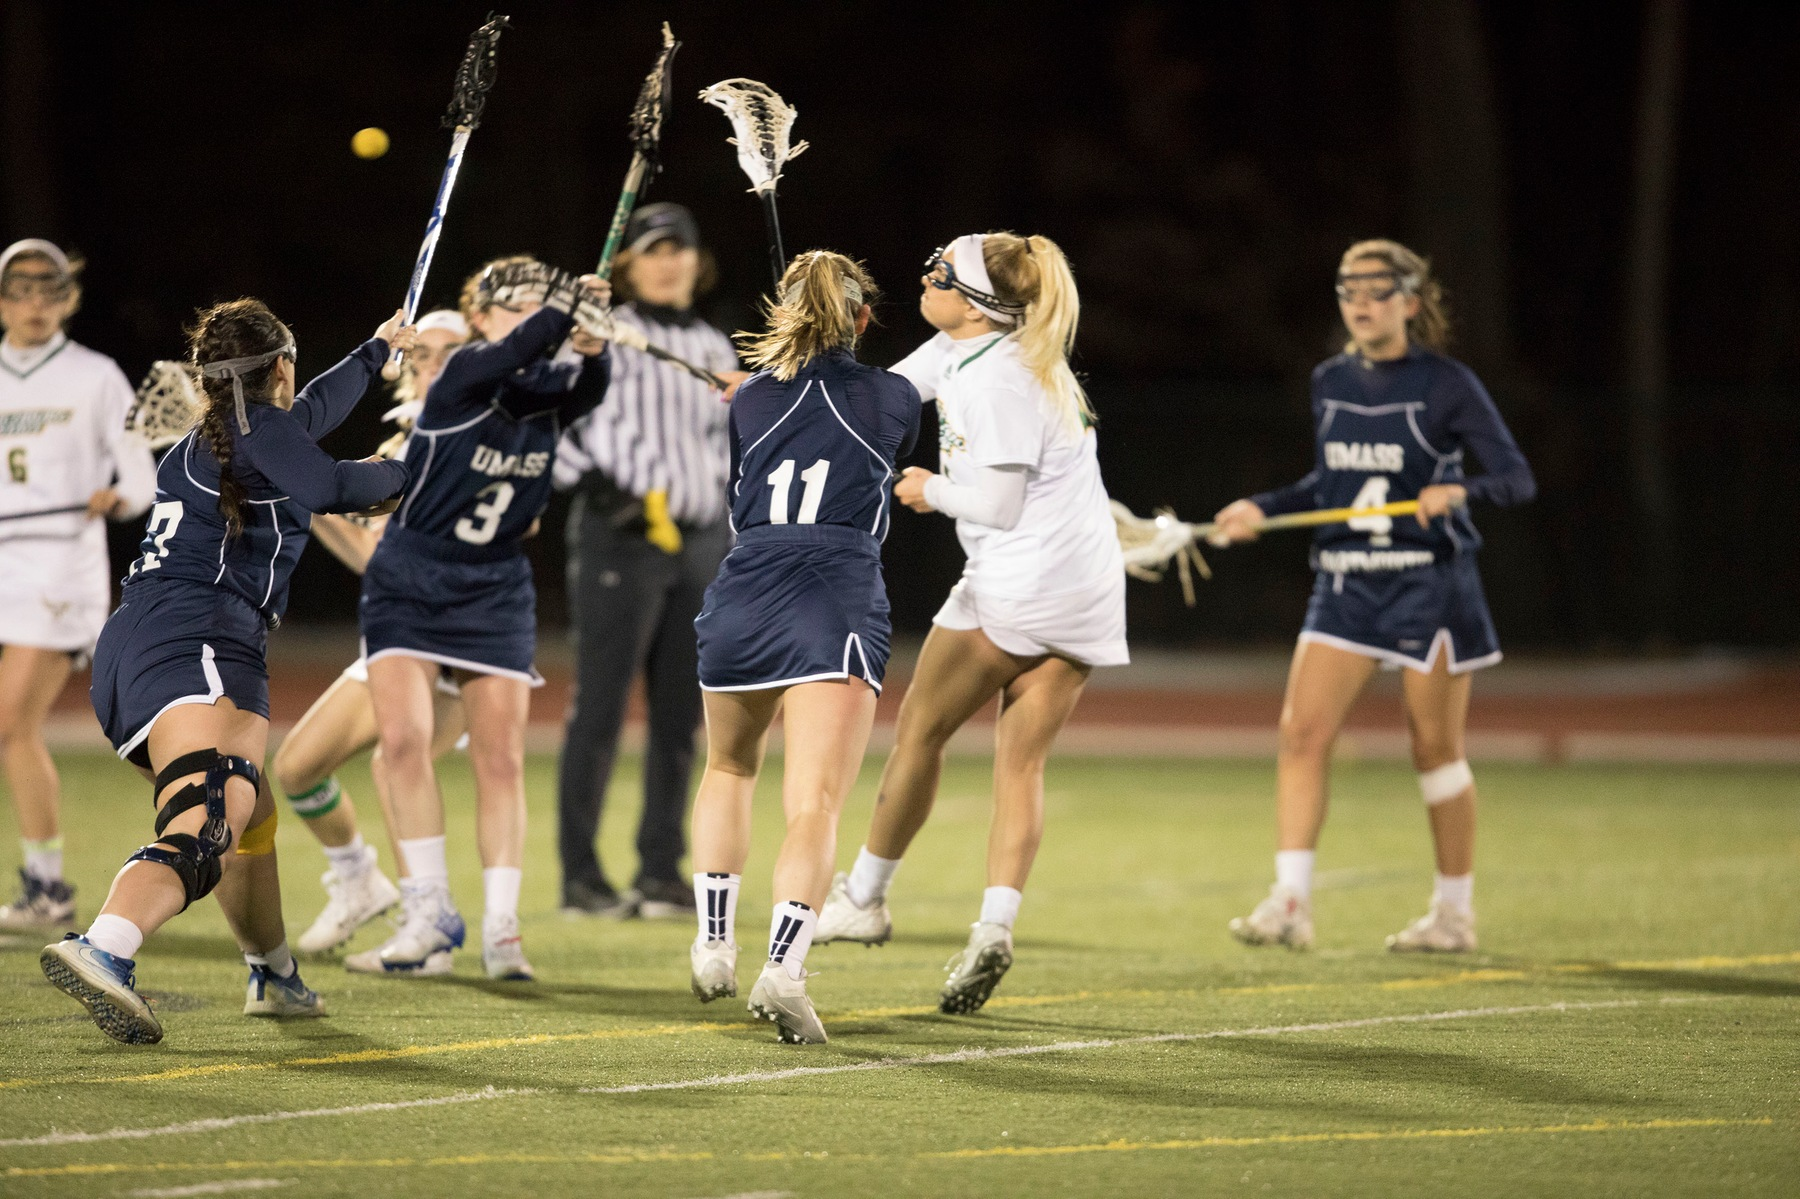 Falcons Fall to Corsairs in Non-Conference Lacrosse Action 13-10